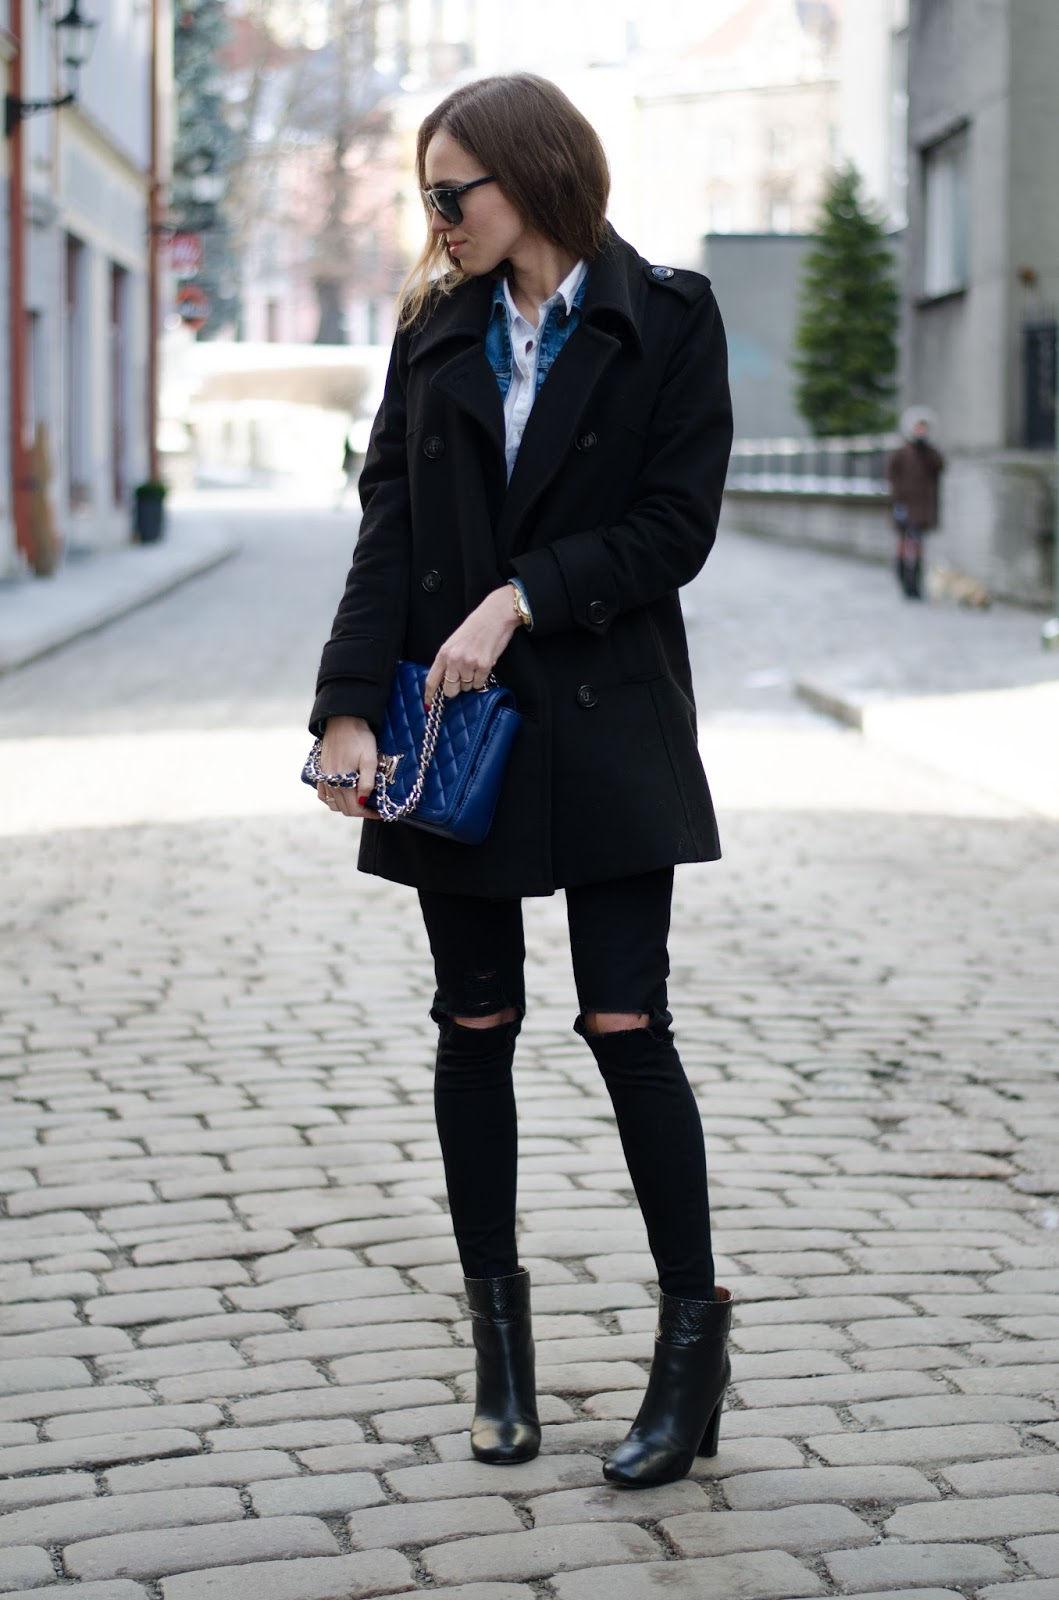 kristjaana mere all black winter outfit